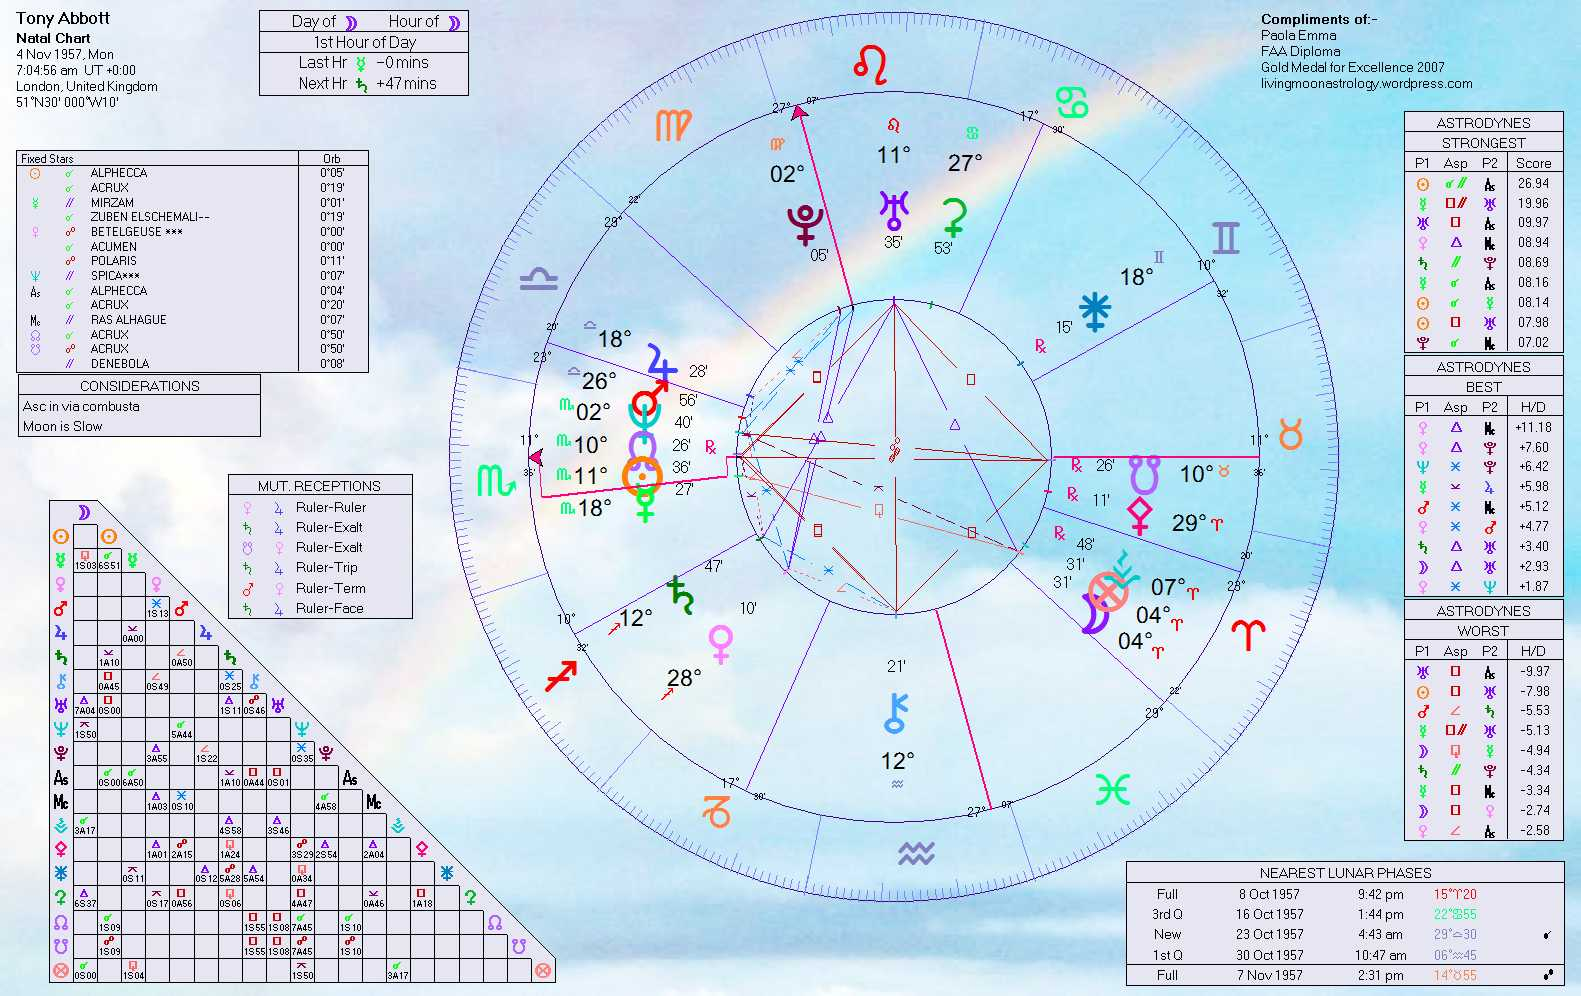 Tony abbot the astrology of australias opposition leader home of click to enlarge nvjuhfo Choice Image